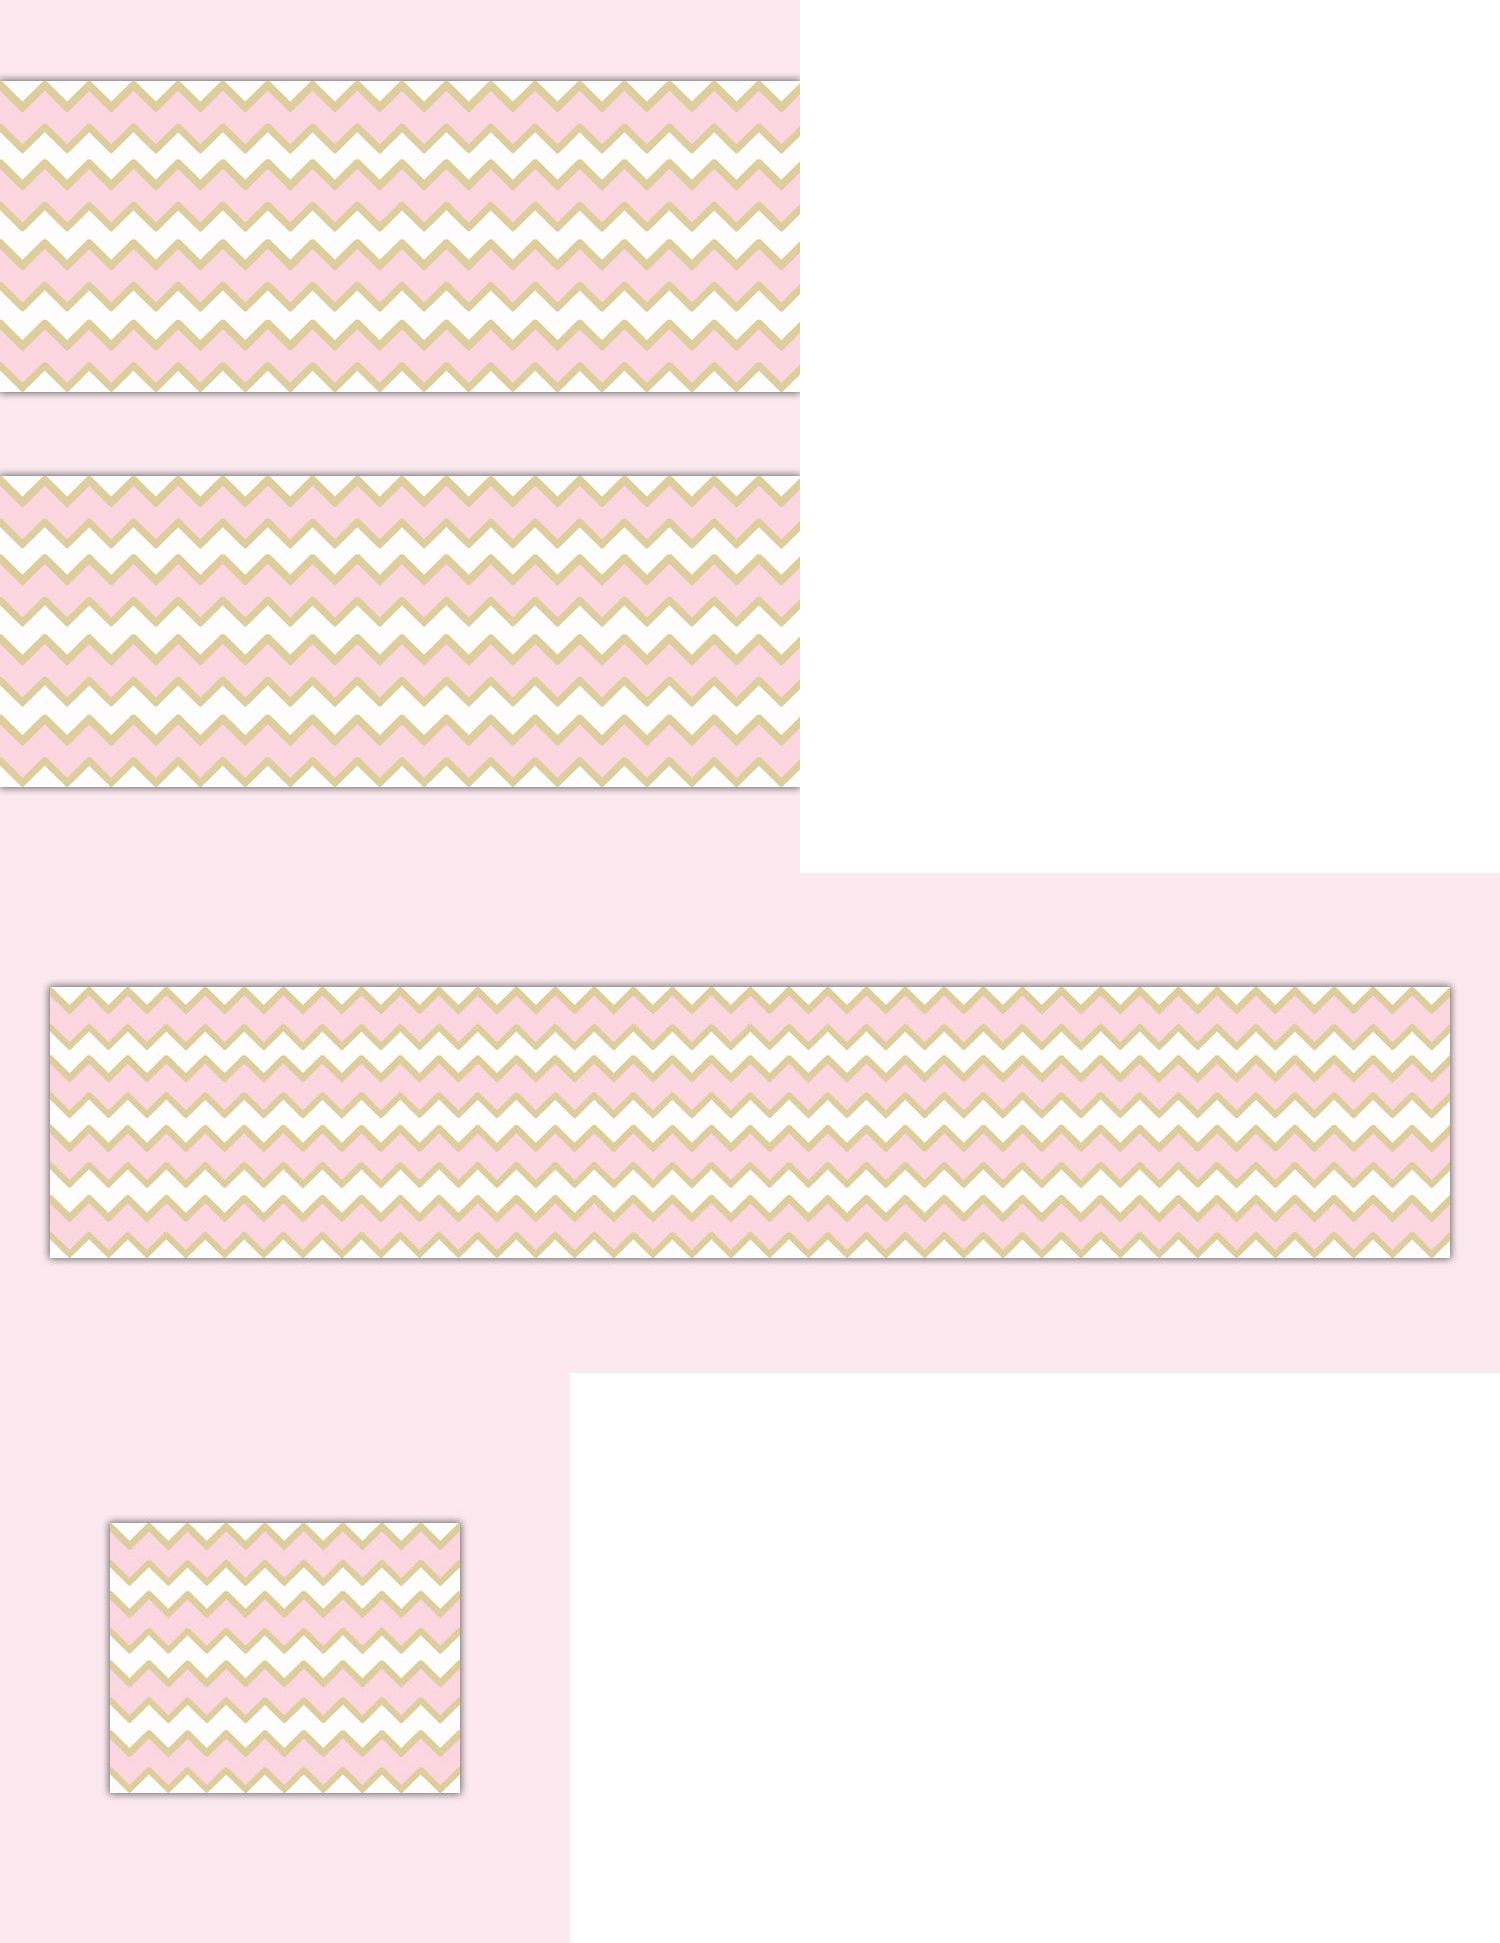 Wallpaper Borders 37636 Pink Gold Chevron Border